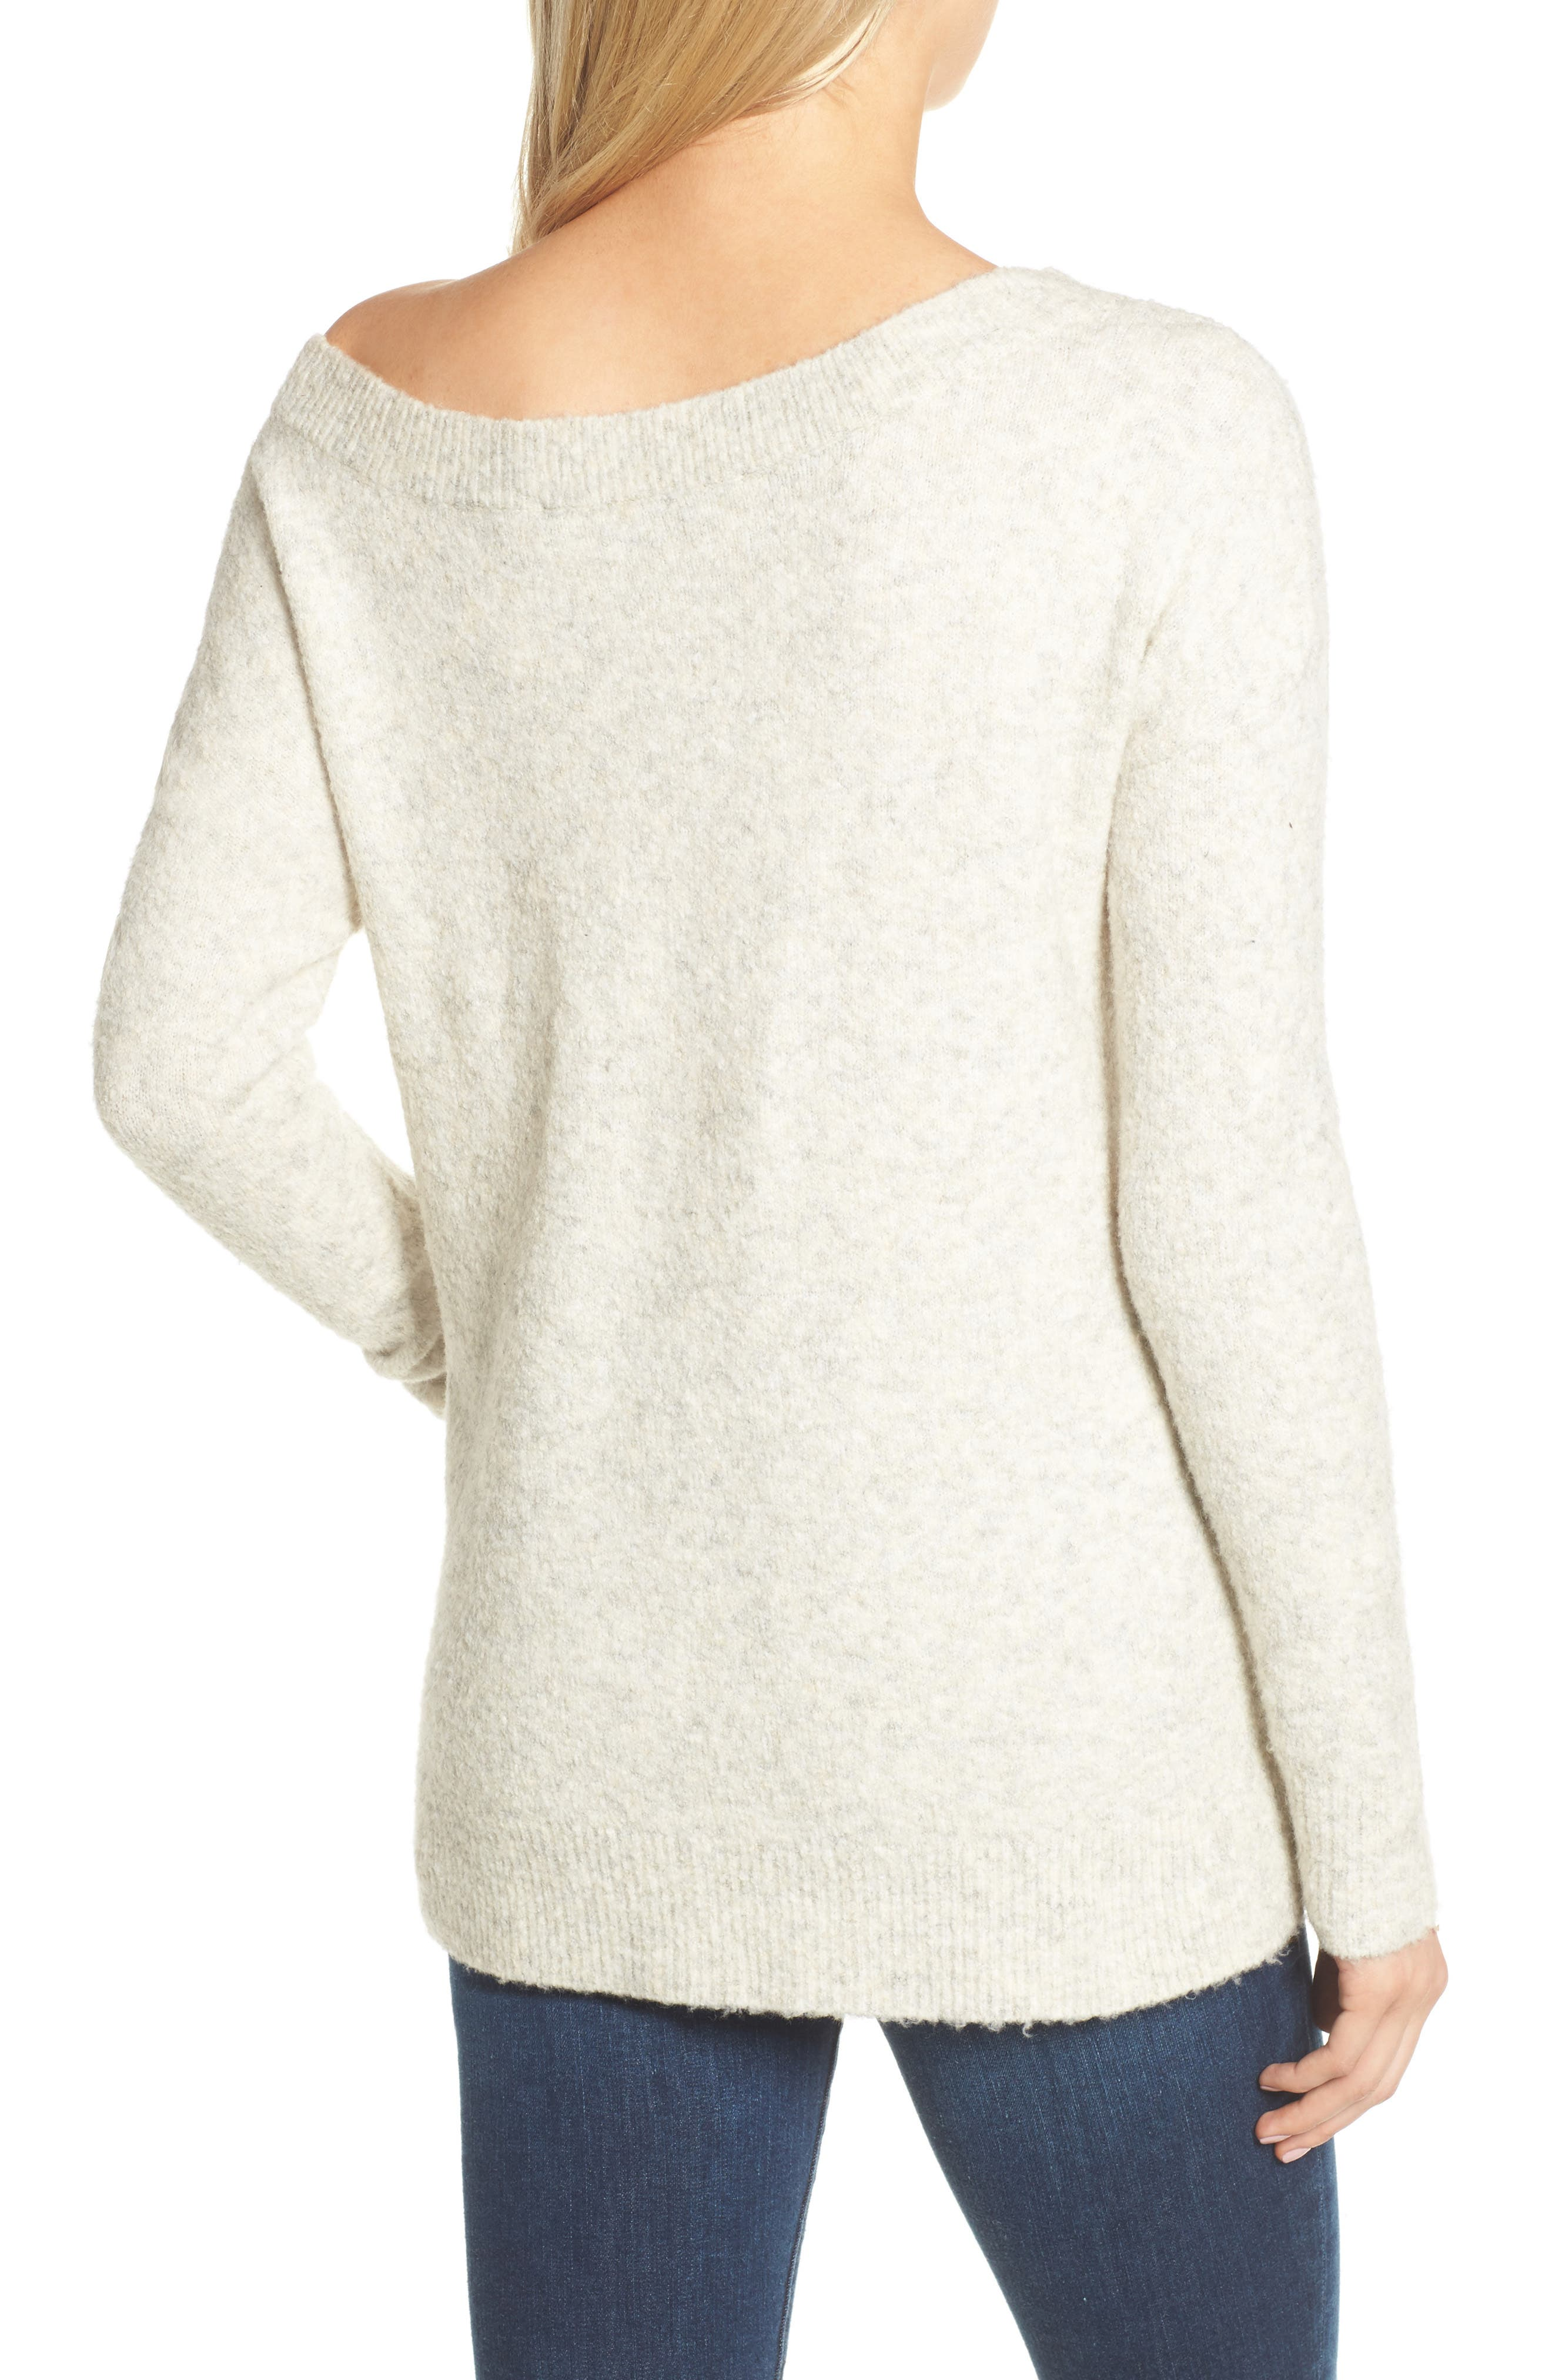 Urban Flossy One-Shoulder Sweater,                             Alternate thumbnail 4, color,